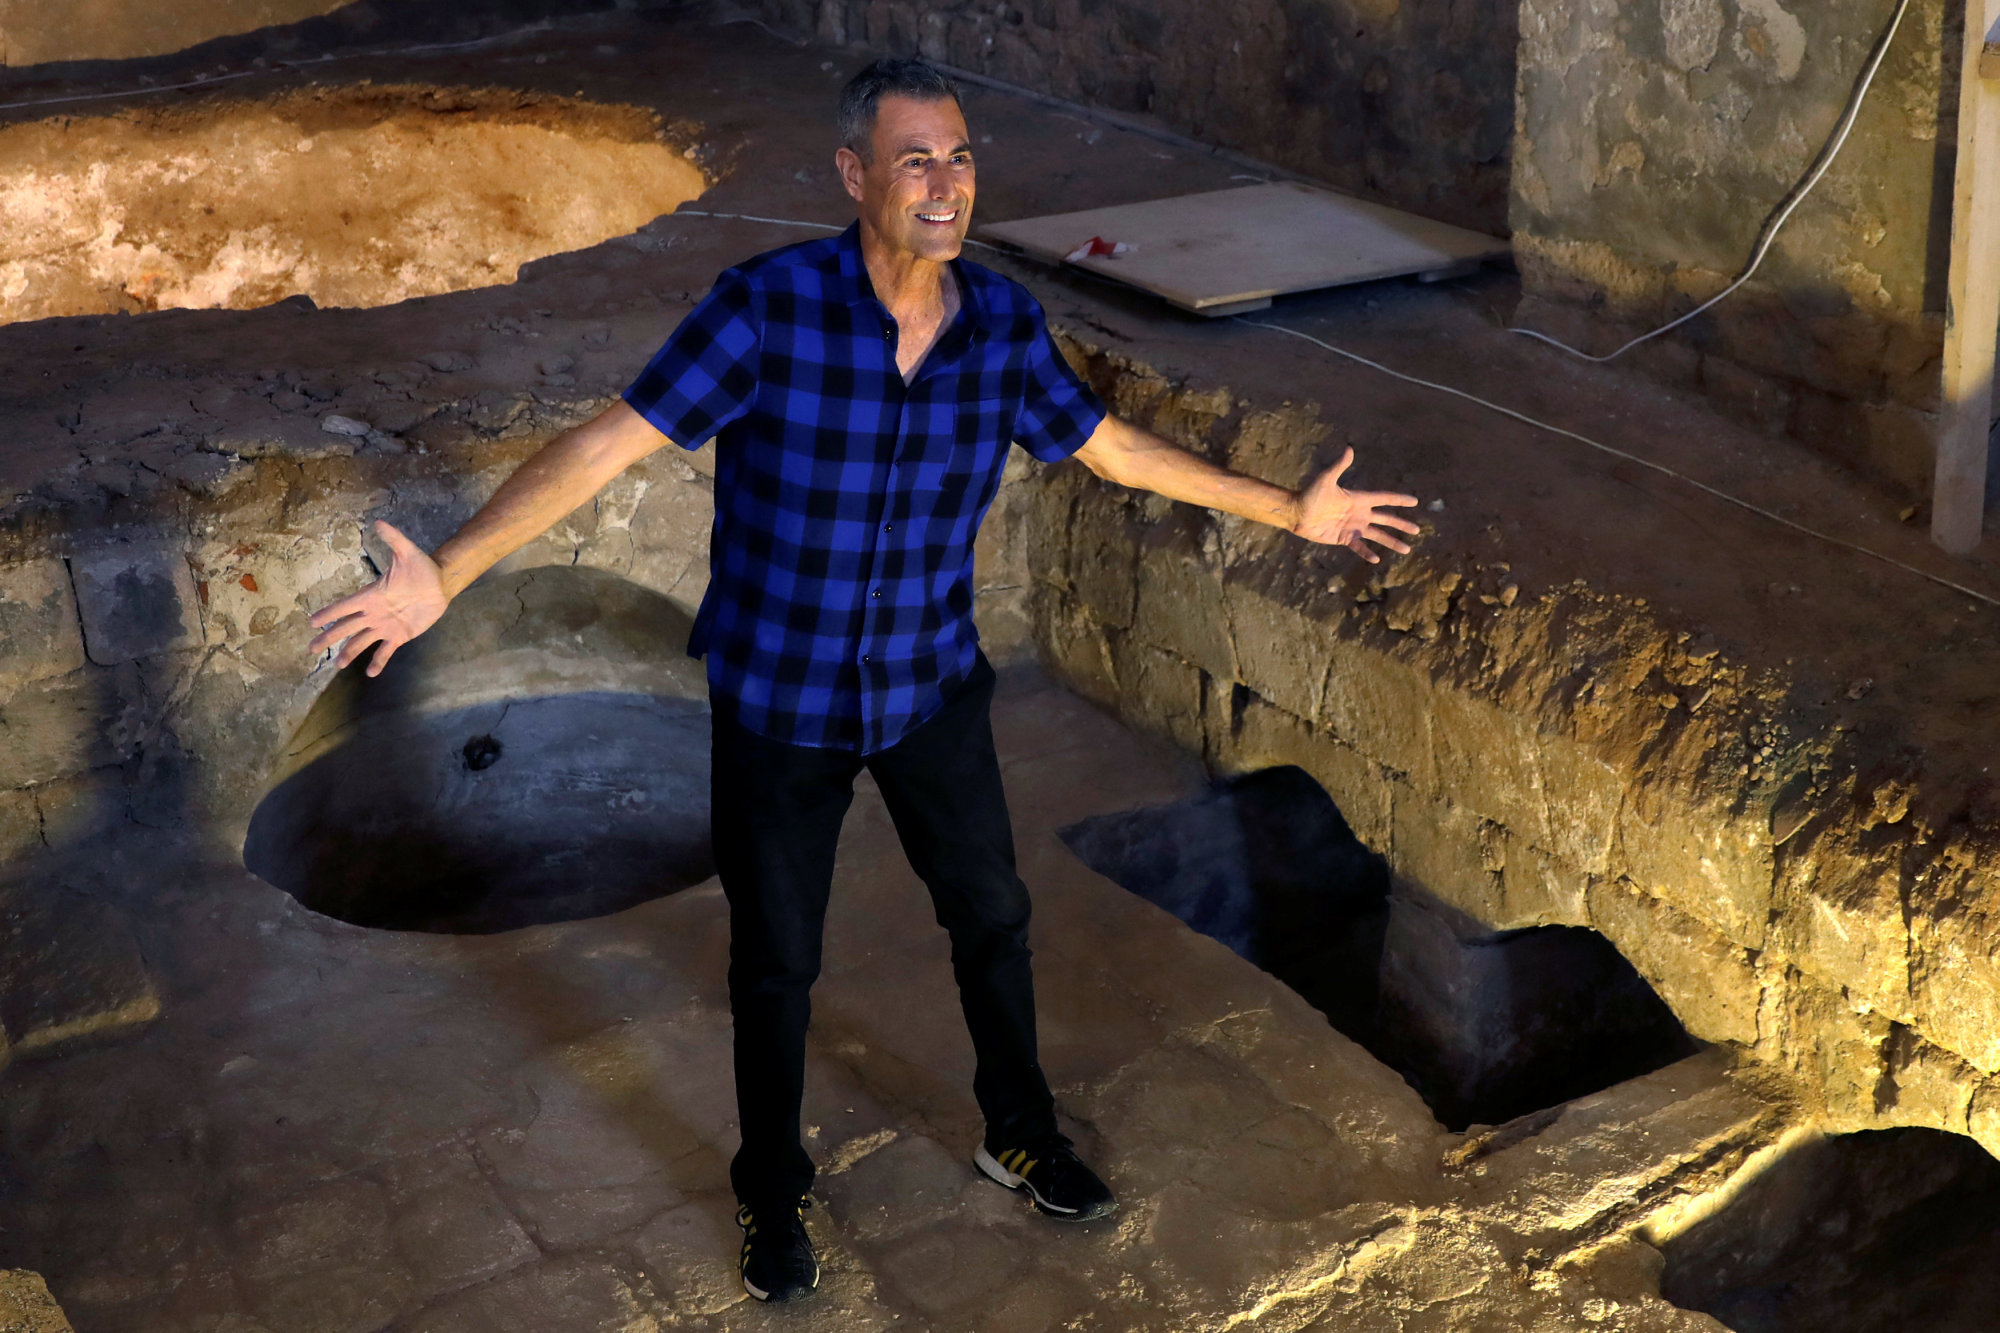 Uri Geller gestures during an interview at the Uri Geller Museum in Jaffa, near Tel Aviv, last August. | REUTERS